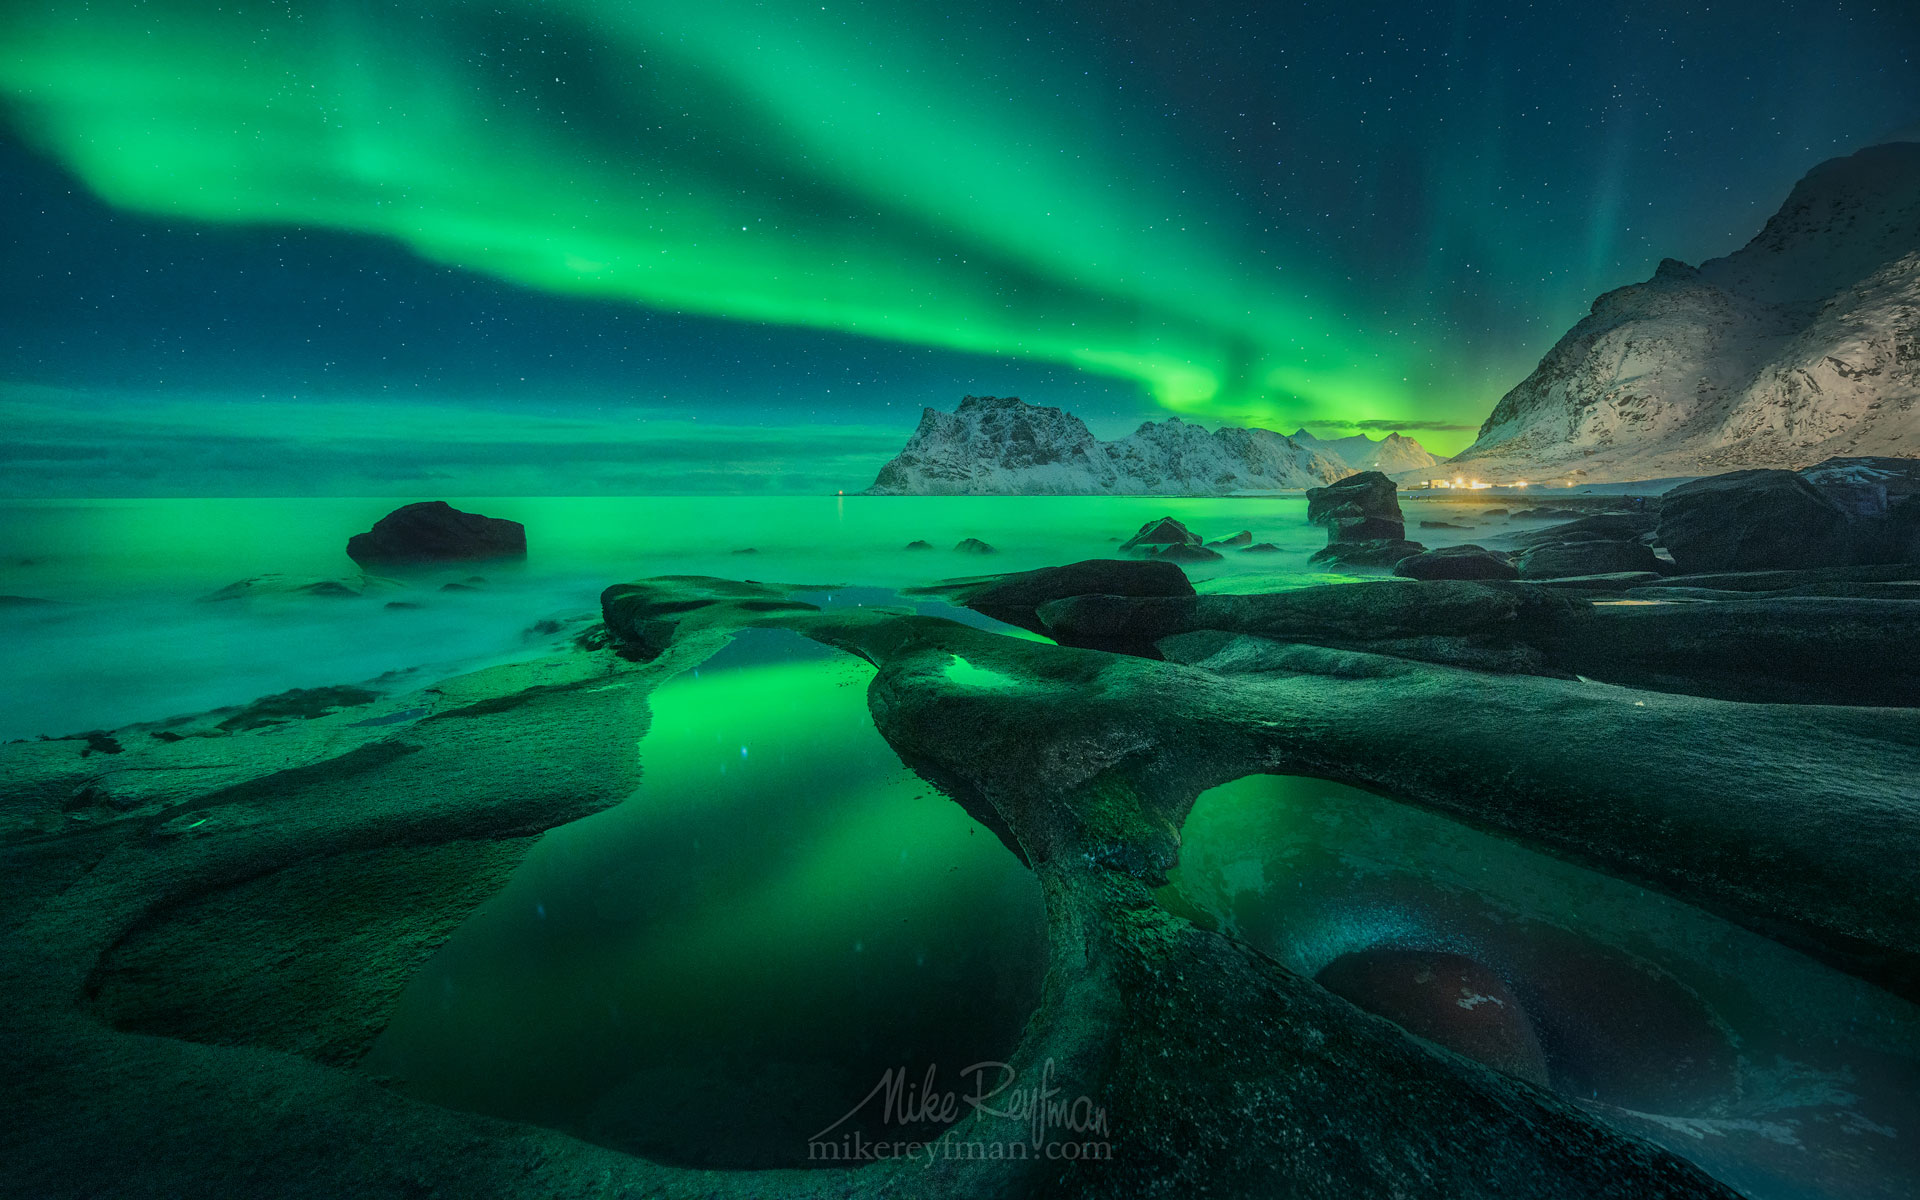 Arctic Avocado. Aurora over Uttakleiv Eye. Utakleiv beach, Vestvagoy, Lofoten Islands, Norway LF-MRD1E2484-89 - Lofoten Archipelago in Winter, Arctic Norway - Mike Reyfman Photography